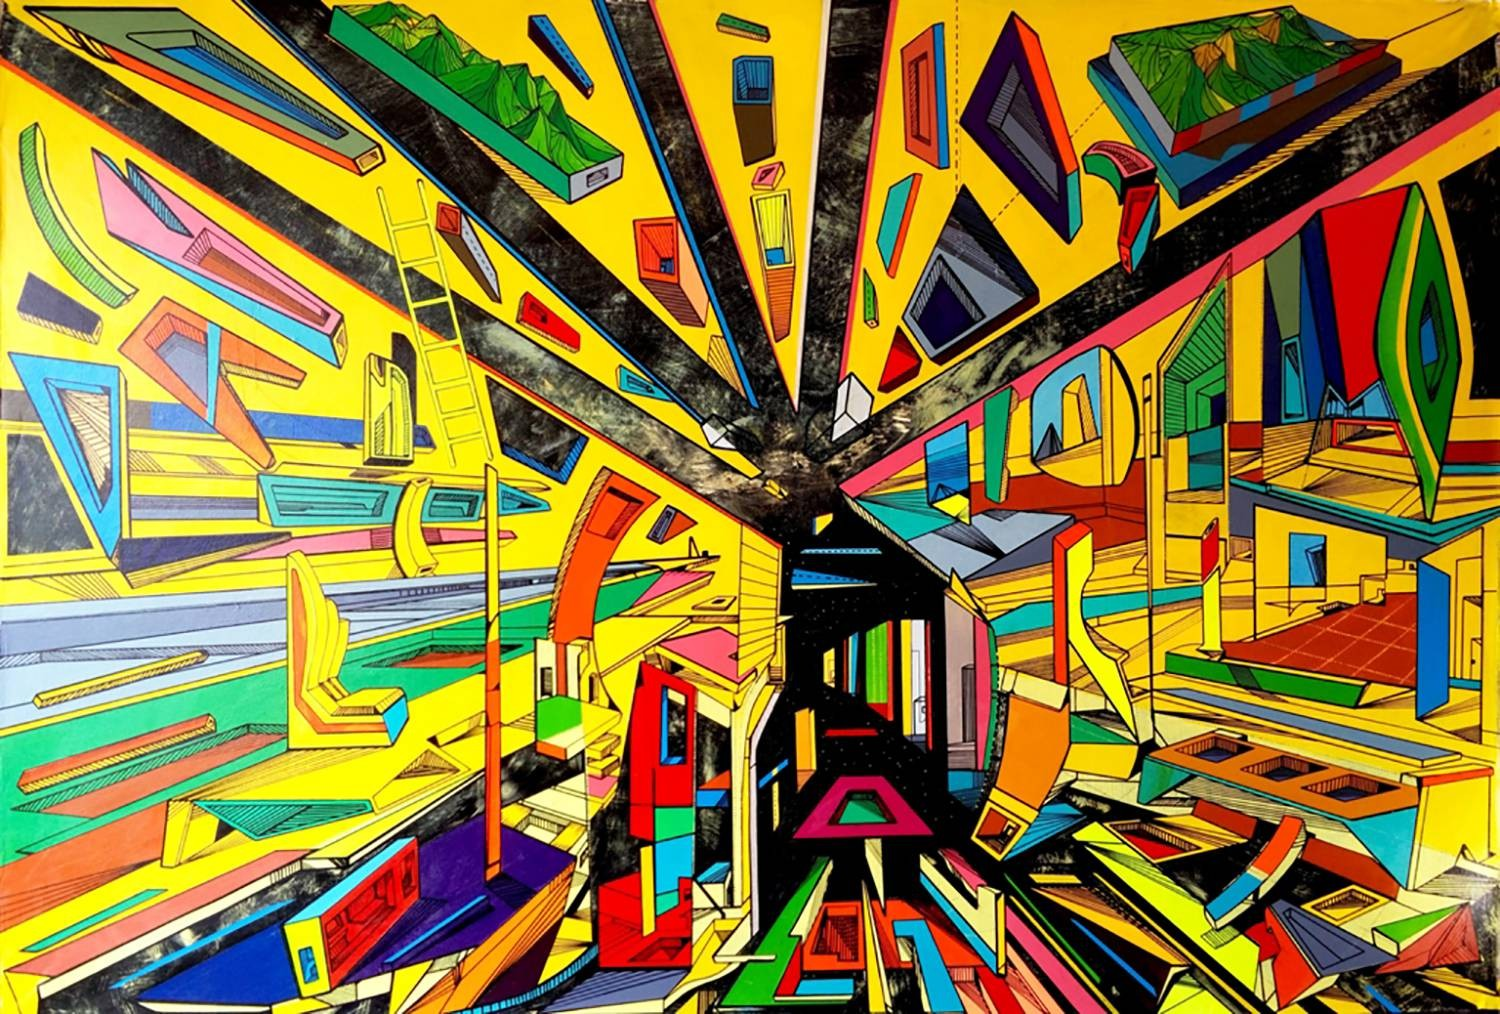 Through the passage is multidimensional painting on canvas by artist Marko Gavrilovic.